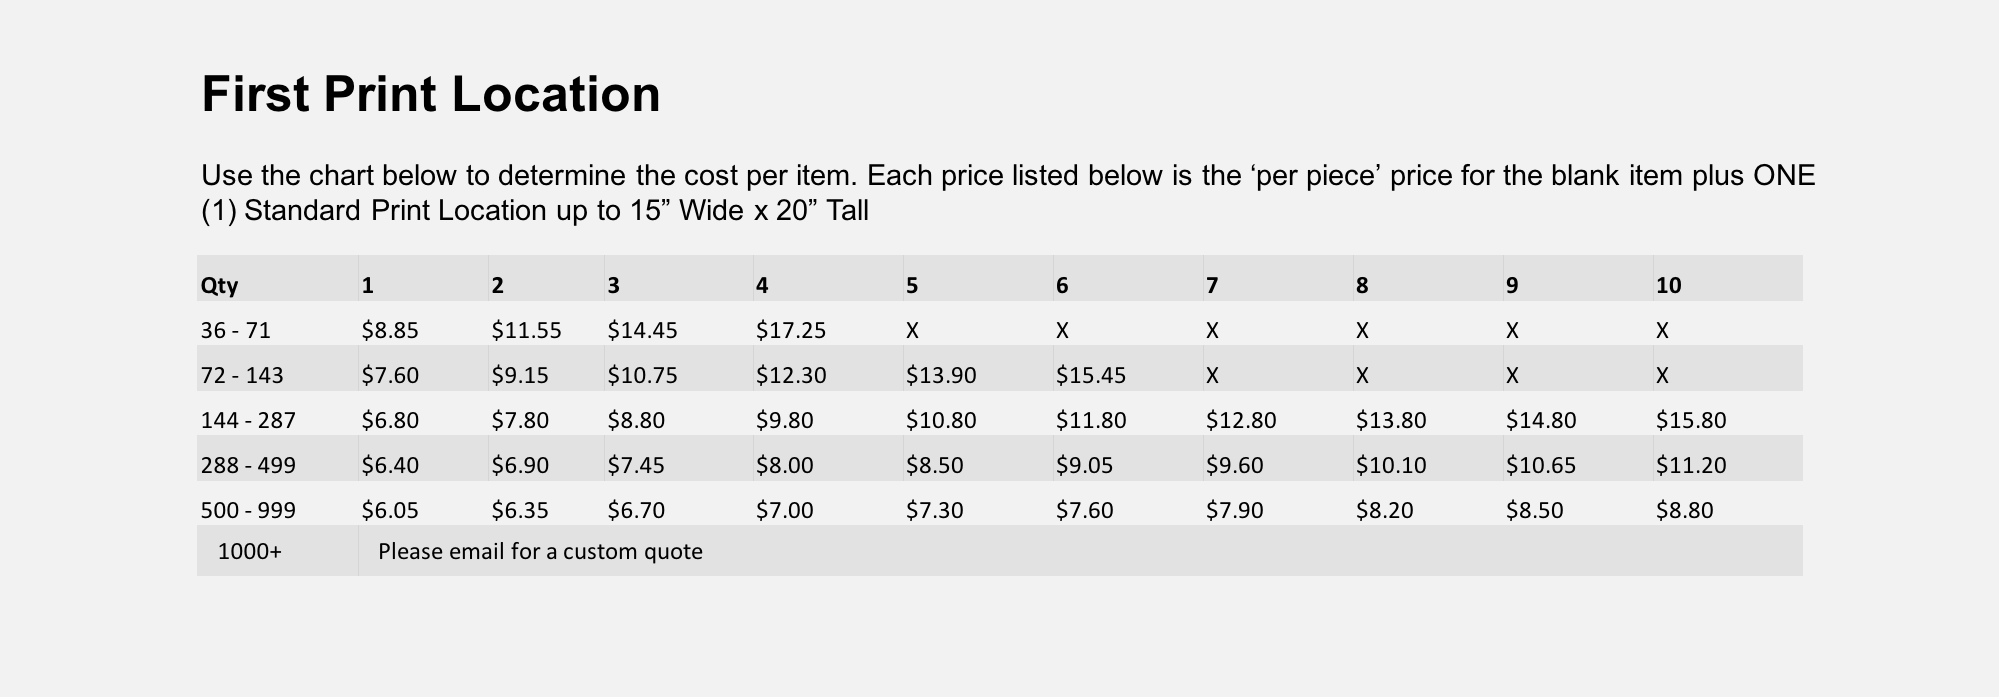 P4200_Pricing.png